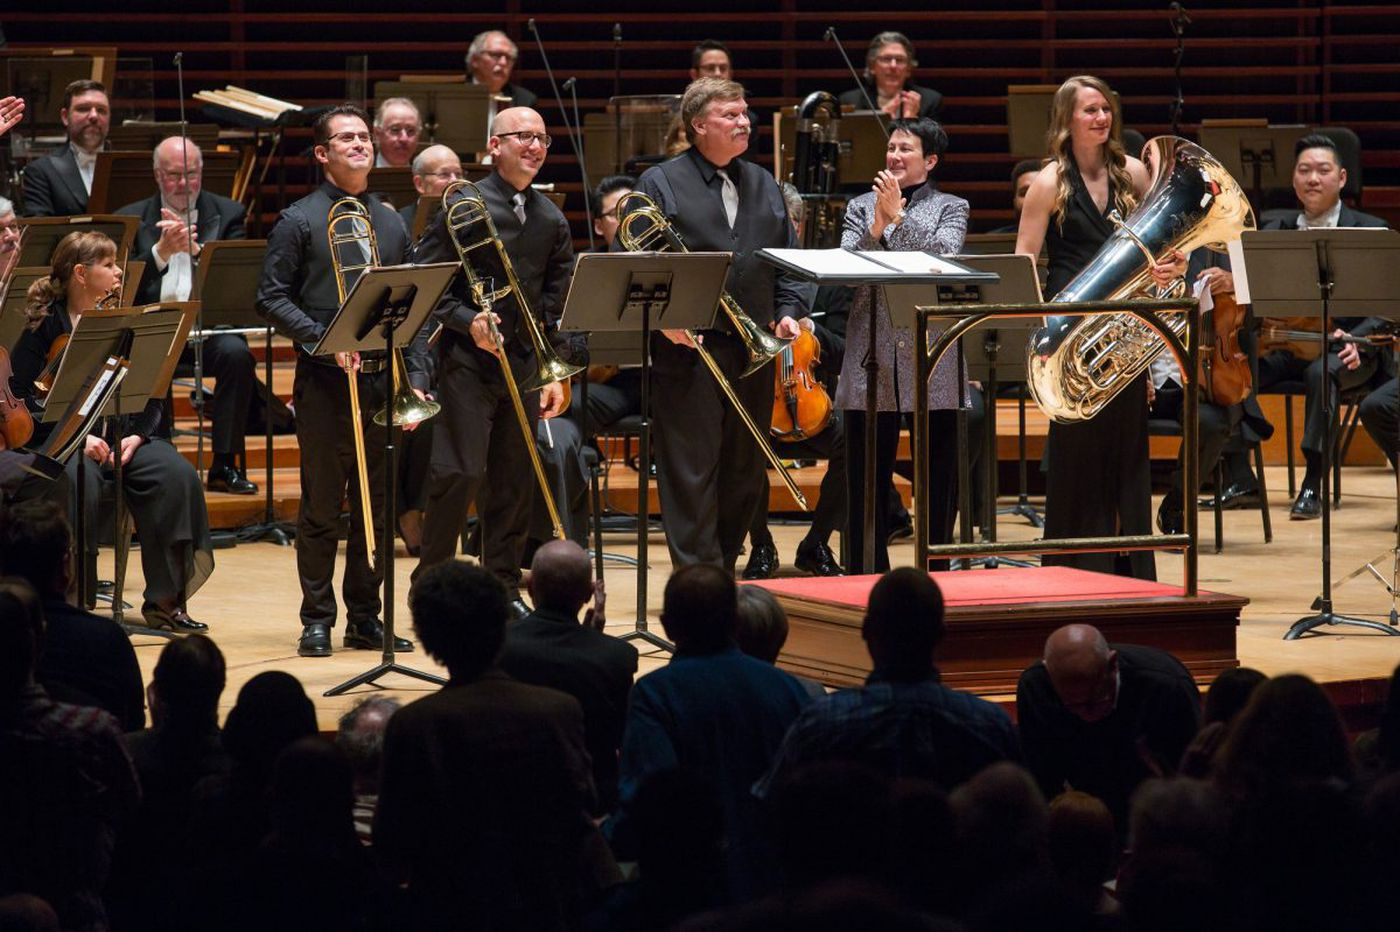 Jennifer Higdon's 'Low Brass Concerto' feels lyrical but cold in its Philadelphia premiere